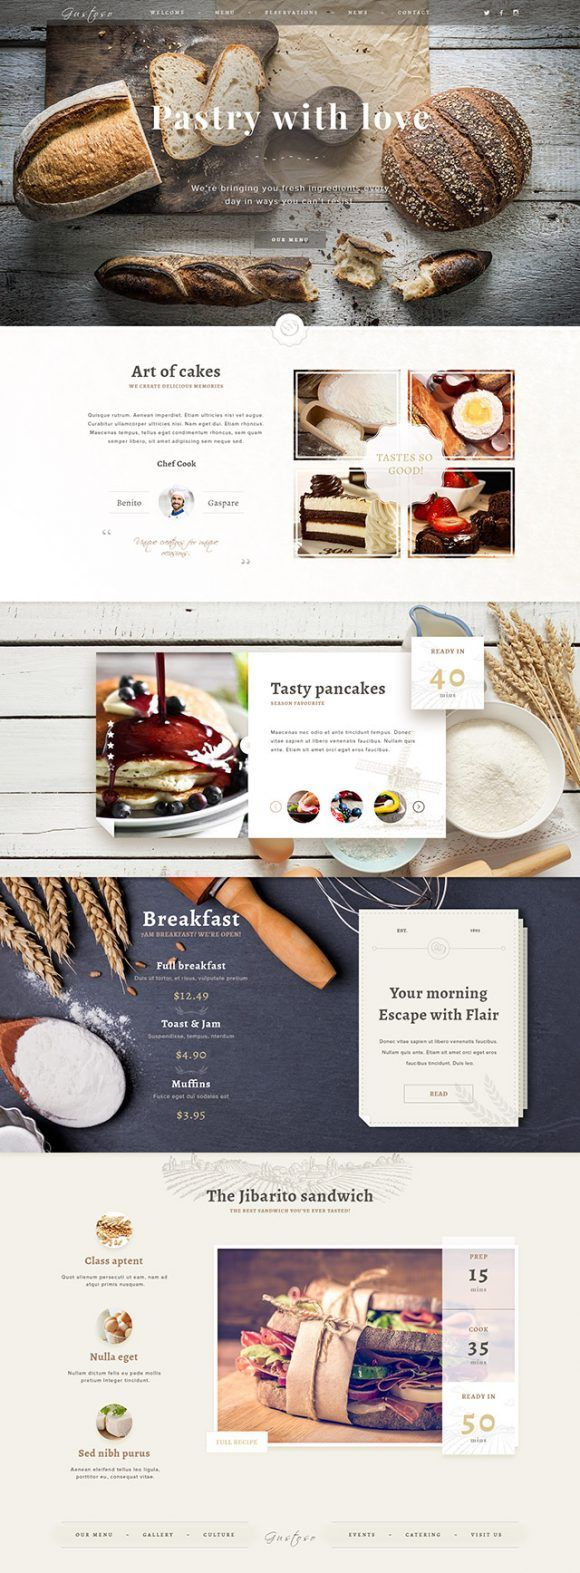 A free PSD one page website template for bakeries